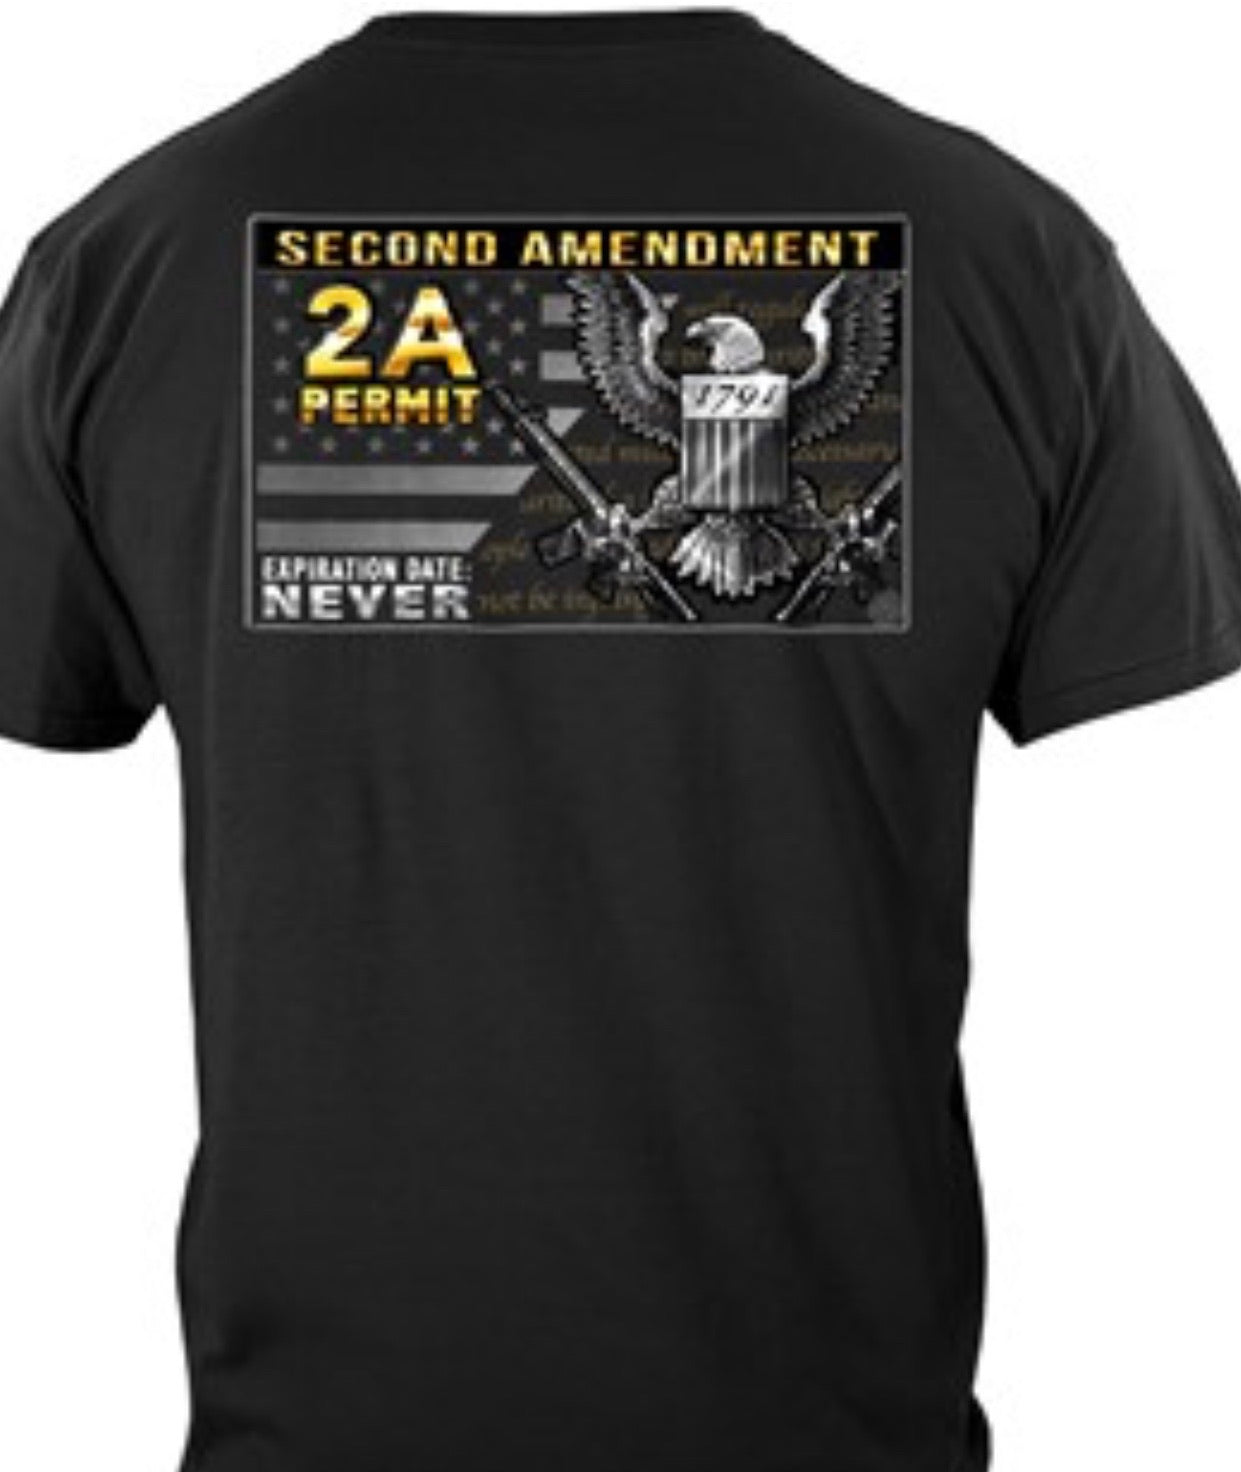 2A PERMIT - The Wall Kids, Inc.